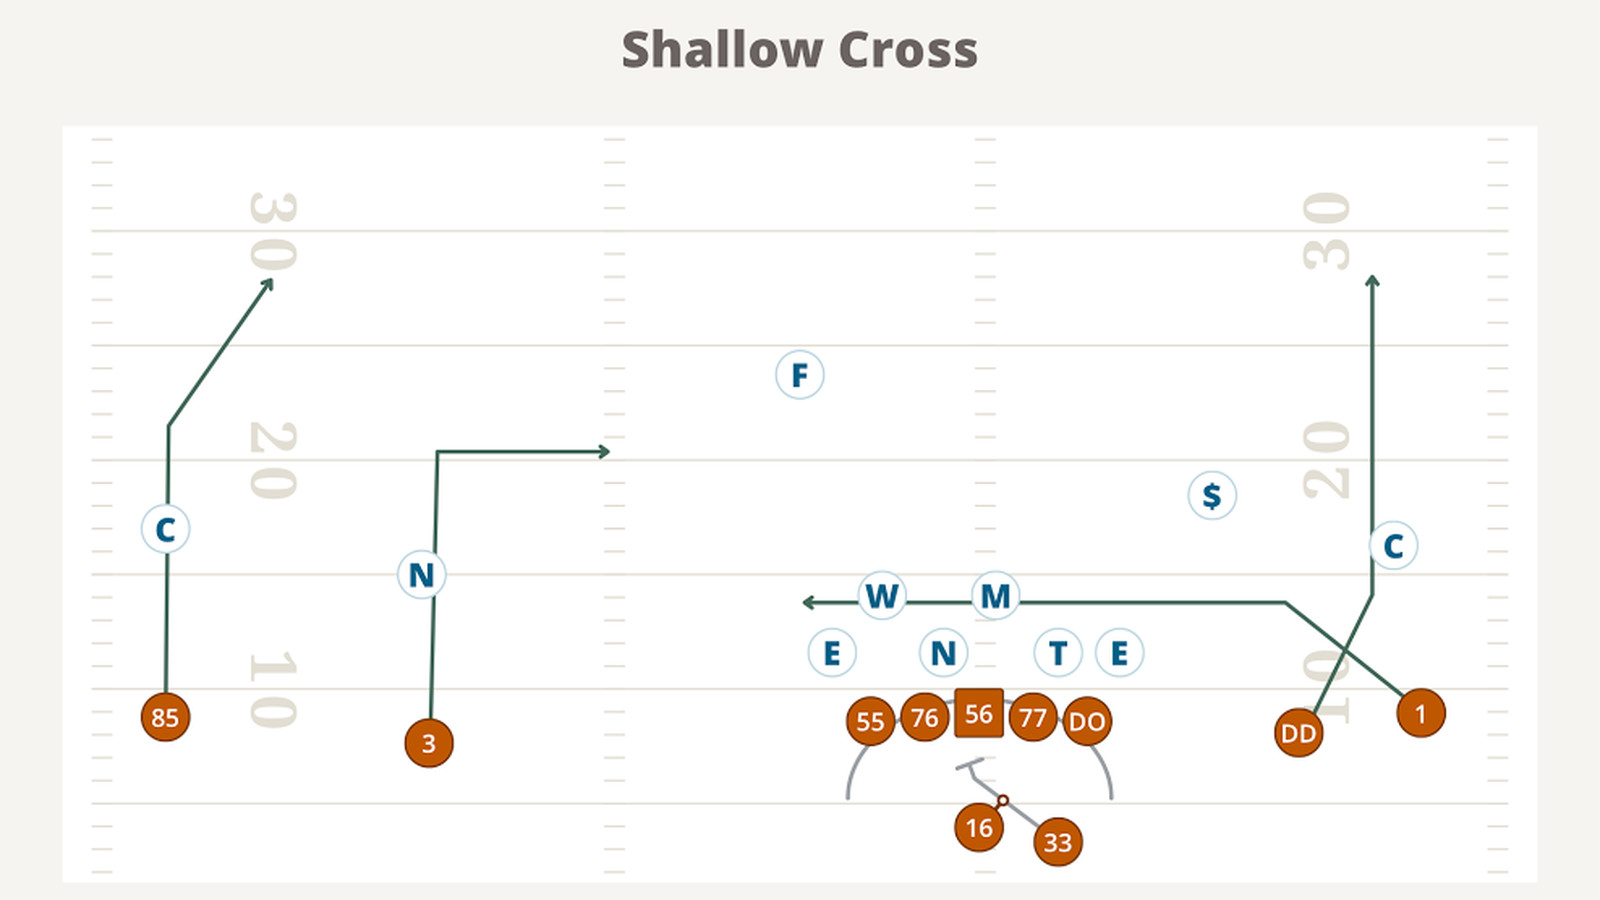 Shallow_cross.0.0